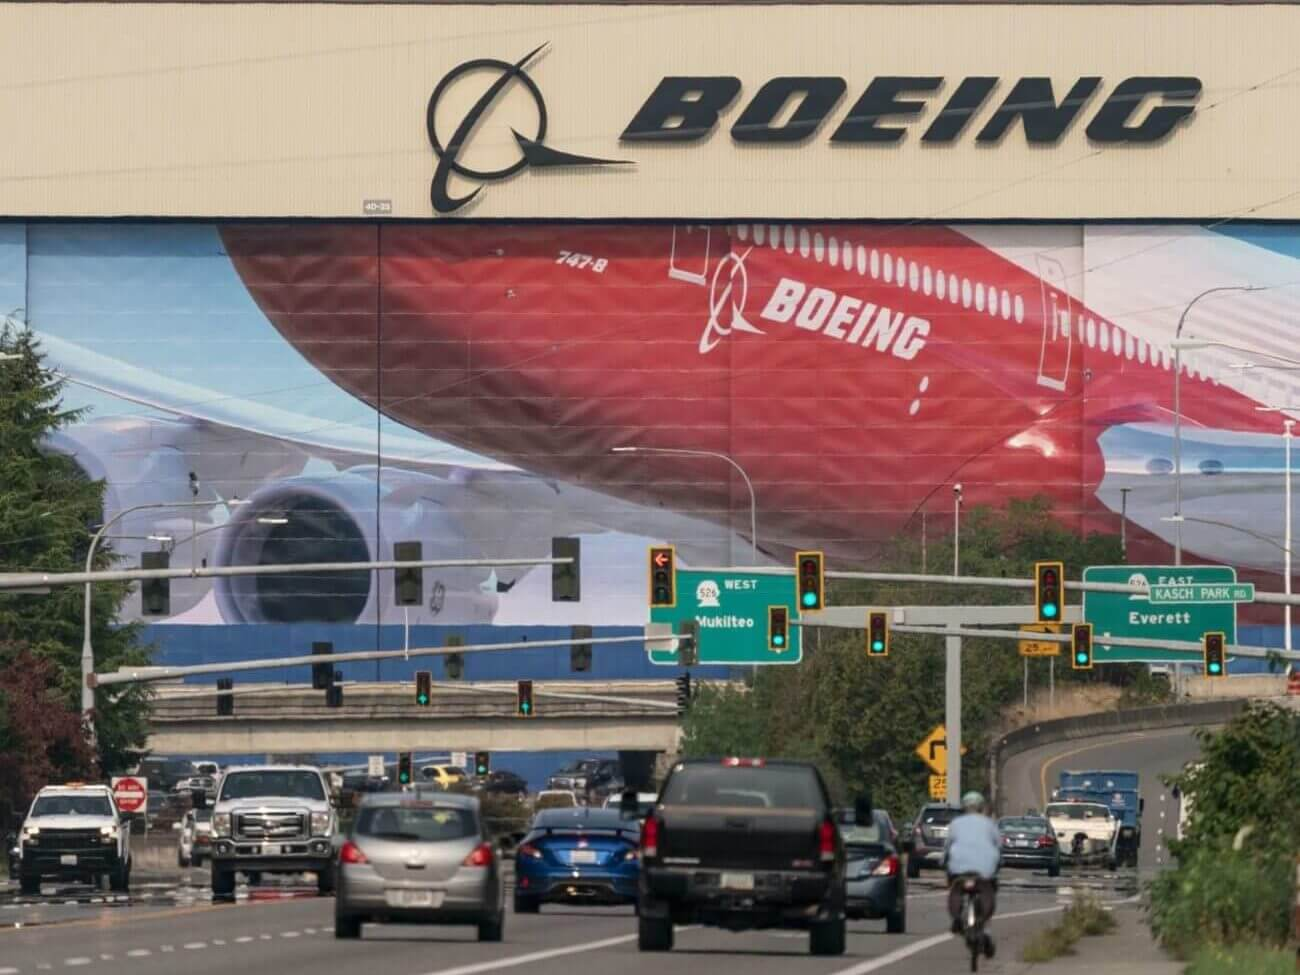 Boeing Is the Newest Firm to Safe away a Opposed Industrial Atmosphere